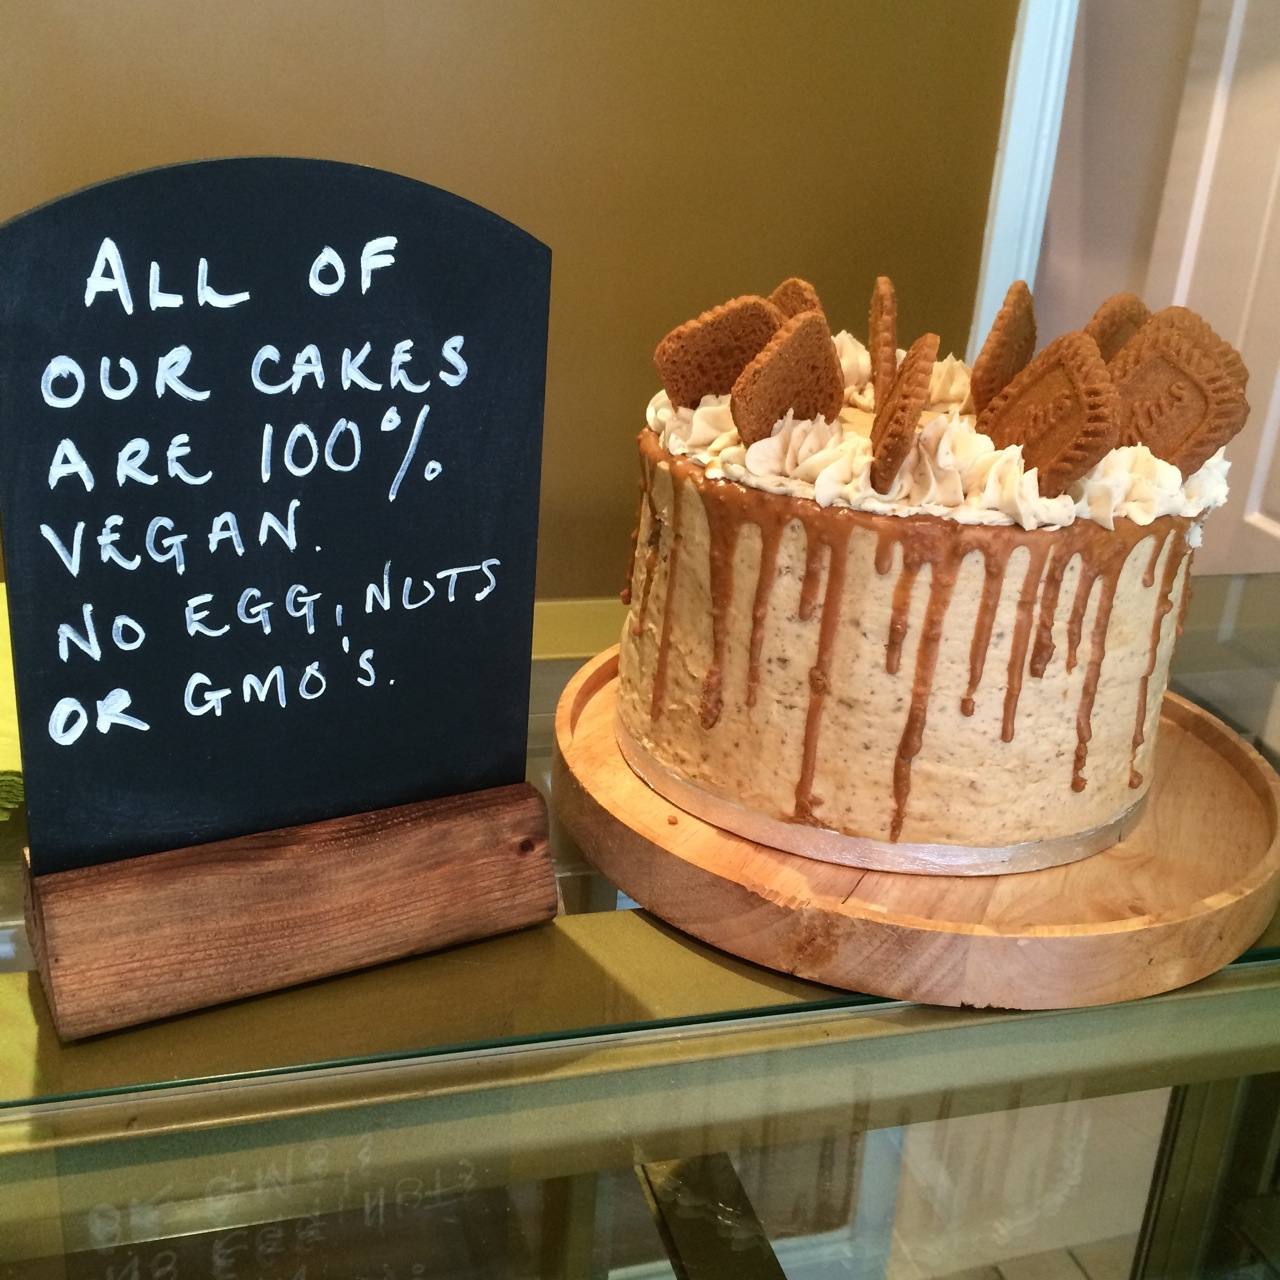 https://i1.wp.com/fatgayvegan.com/wp-content/uploads/2015/05/vegan-cake-and-sign.jpg?fit=1280%2C1280